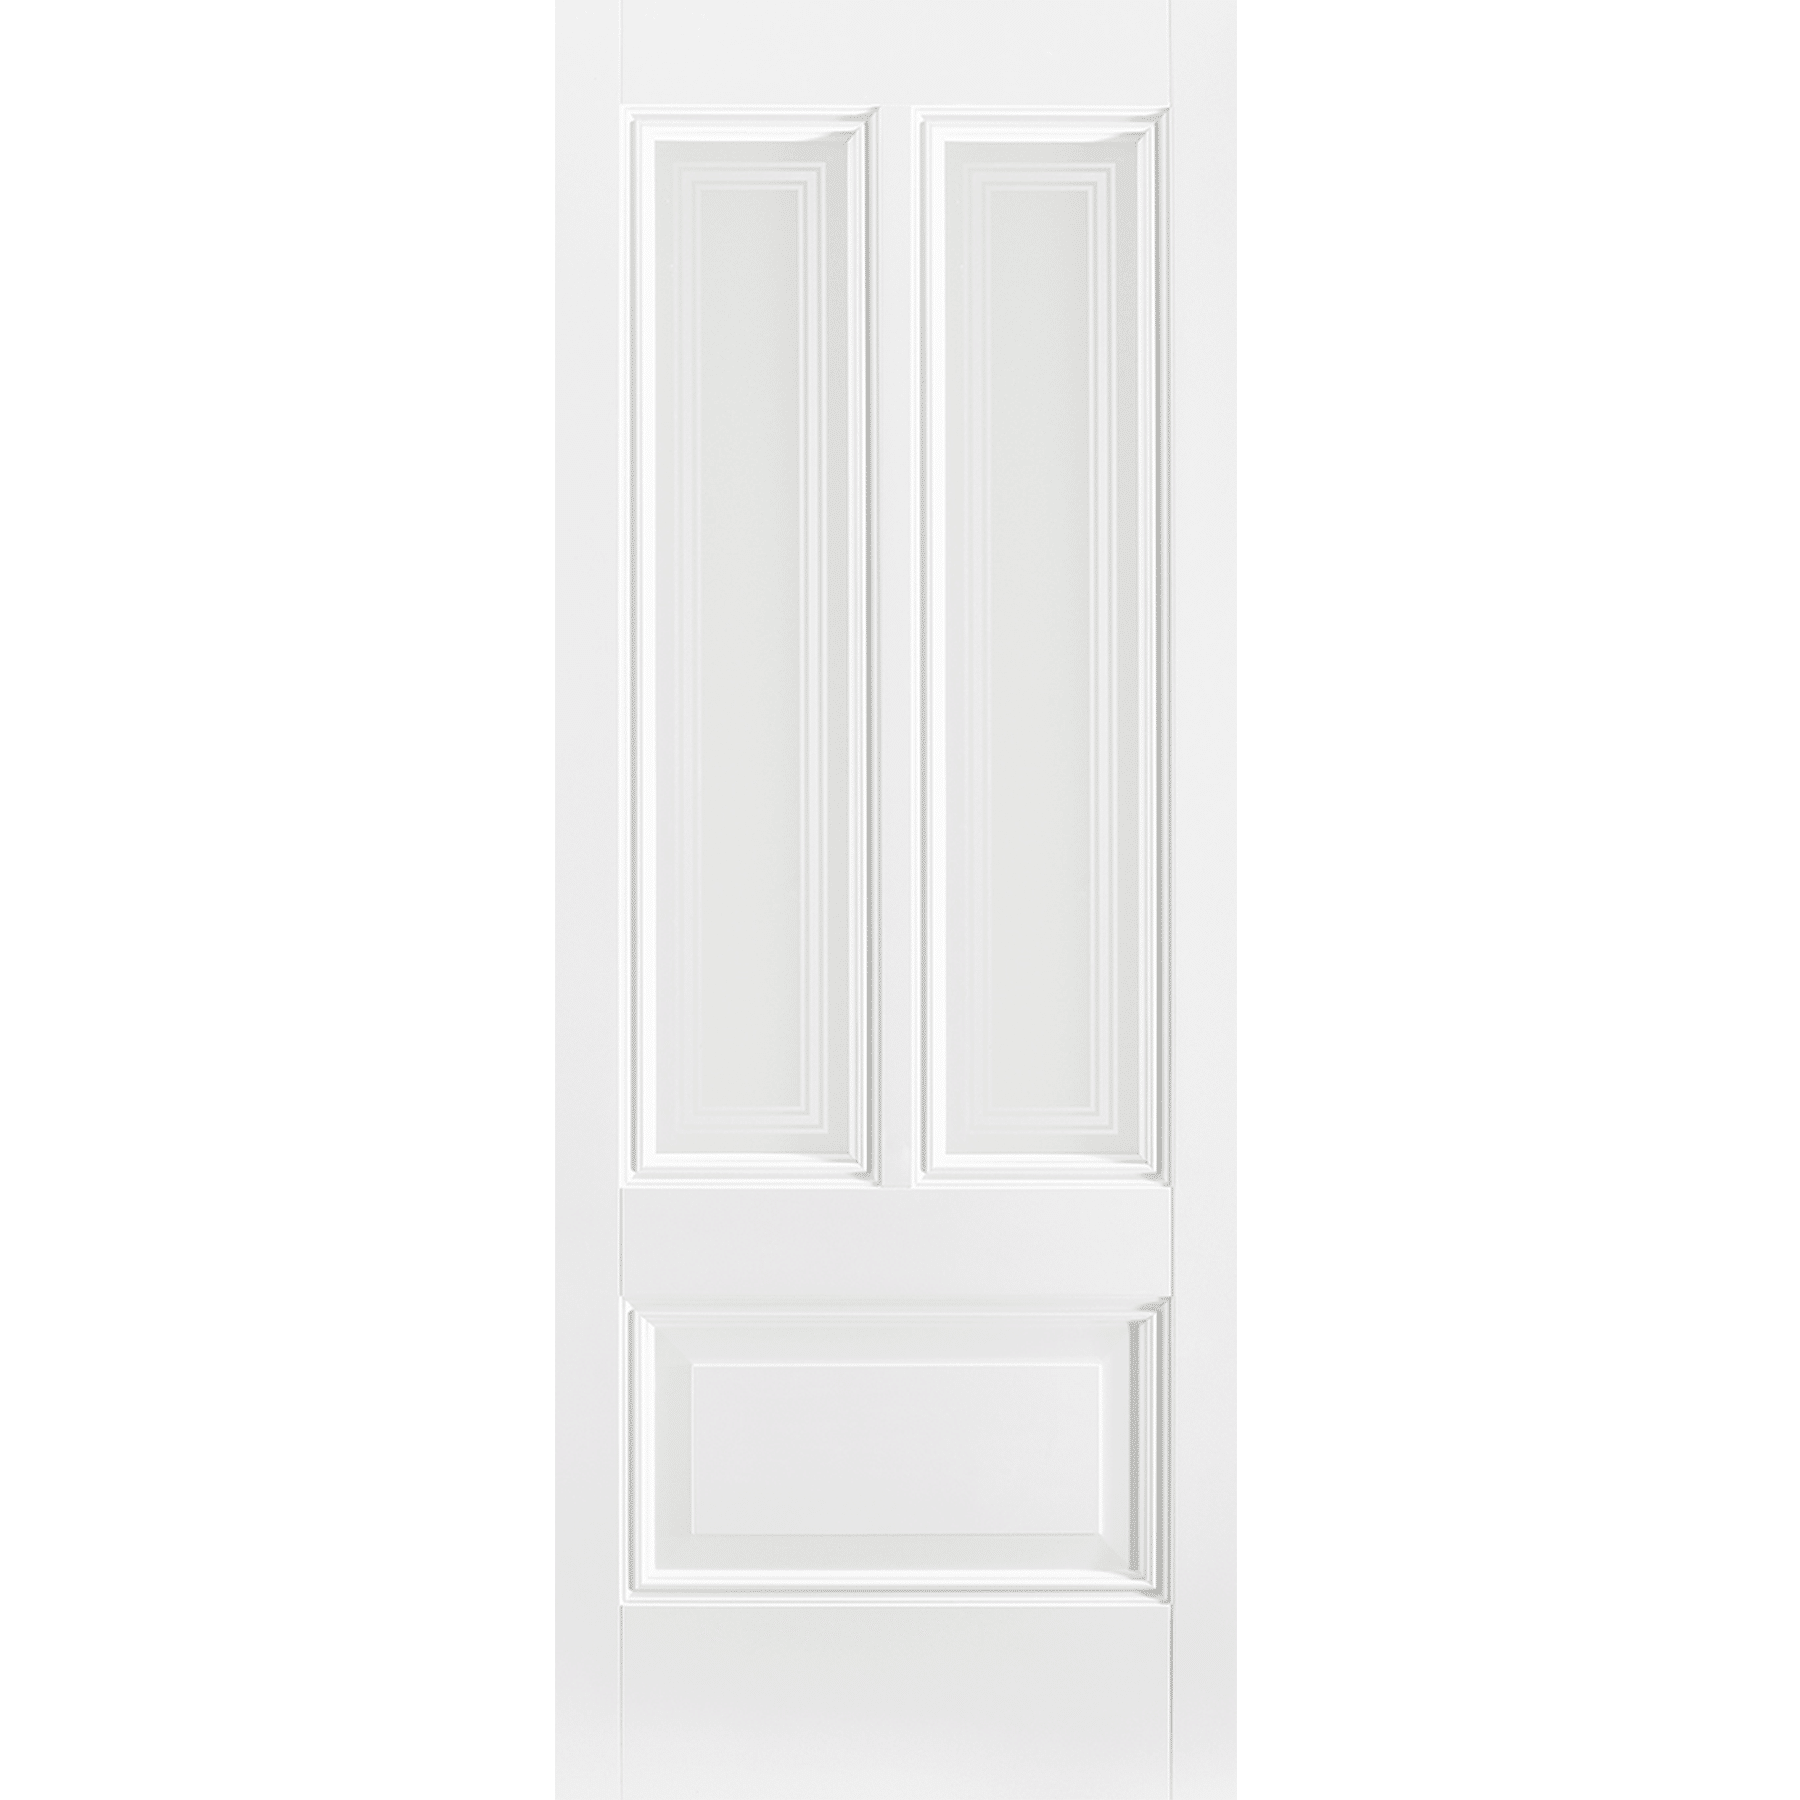 Peony 2L White Primed Glazed Internal Door